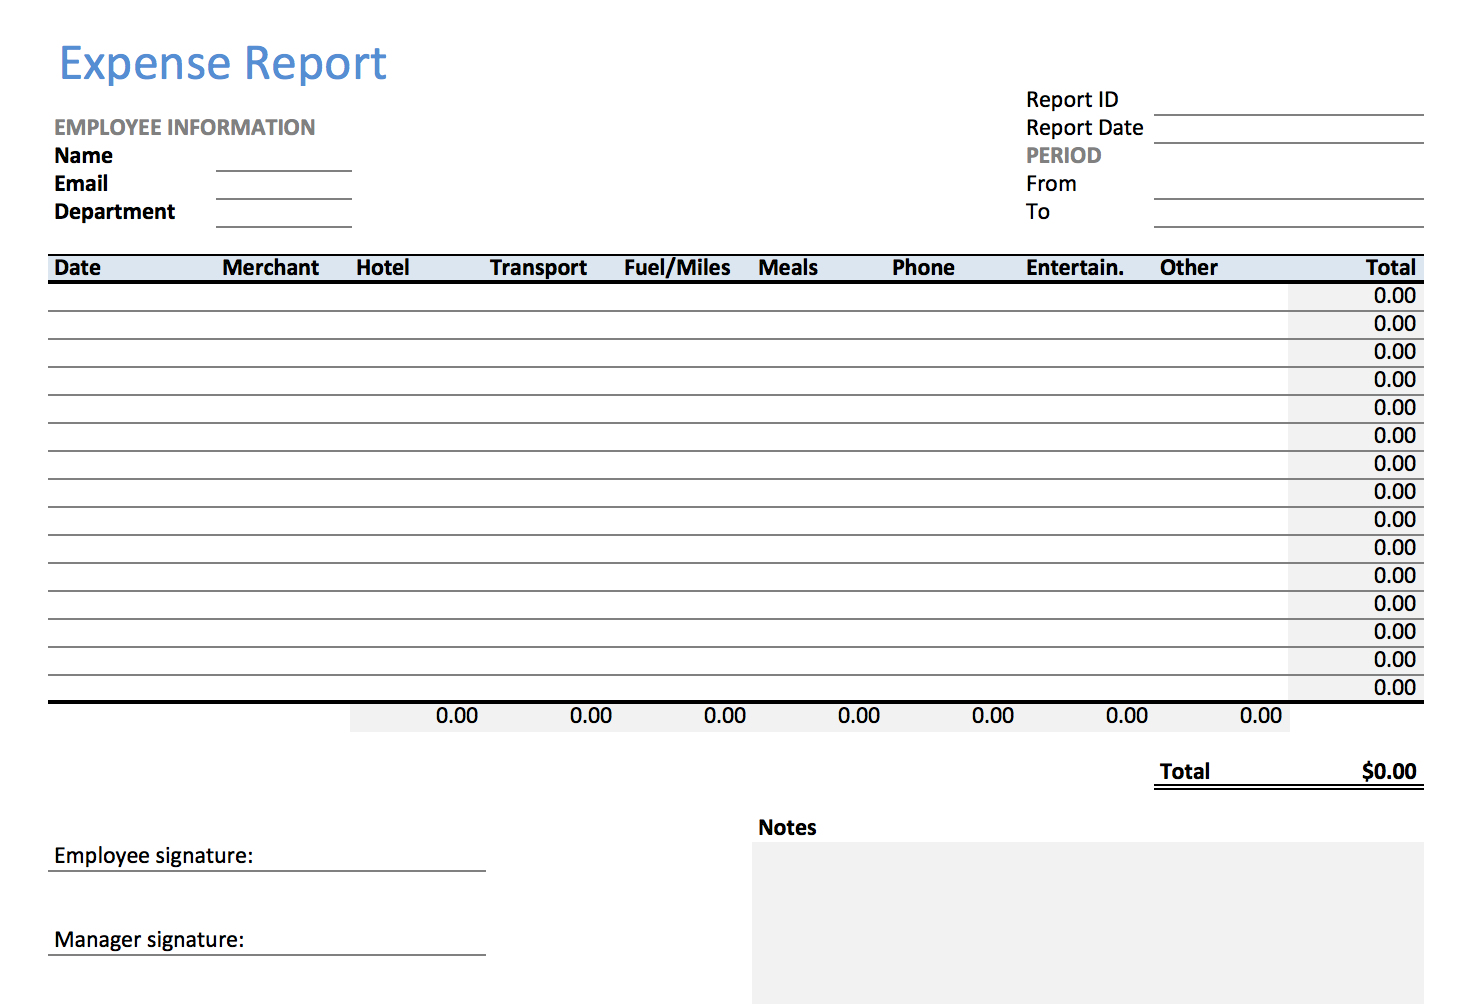 quickbooks expense report template koni polycode co